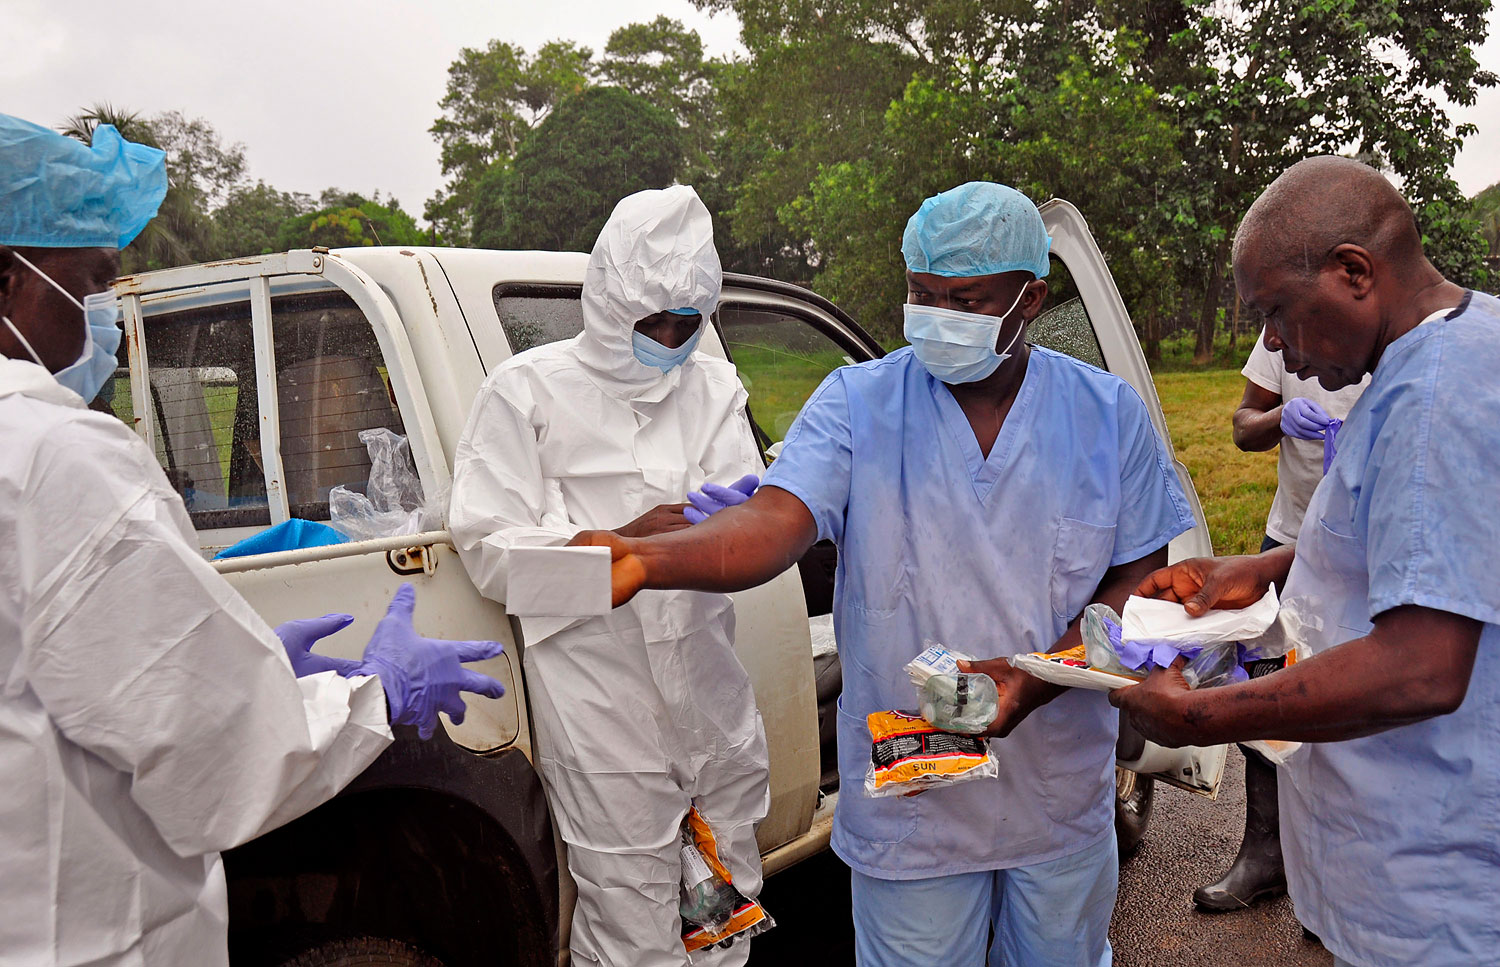 Health workers are handed personal protective gear by a team leader, right, before collecting the bodies of the deceased from streets in Monrovia, Liberia, Aug. 16, 2014.